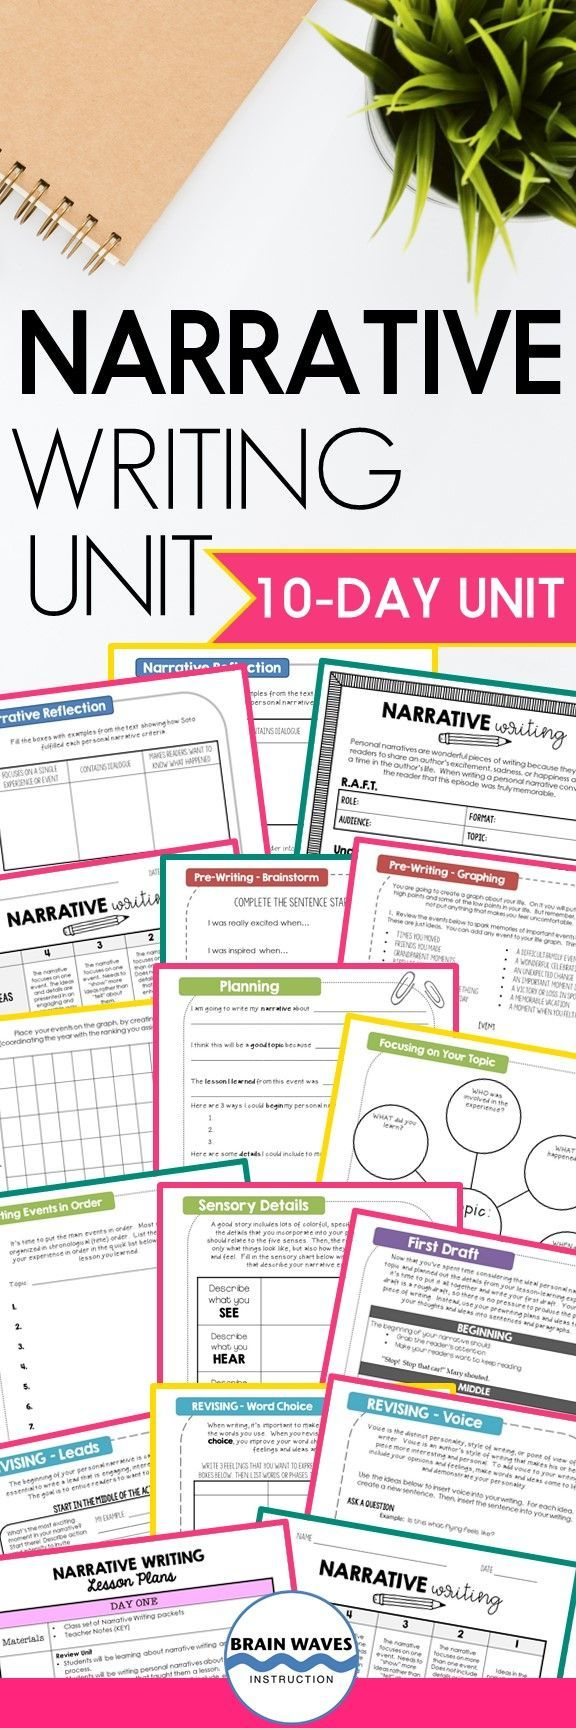 In this detailed, CCSS-aligned, 10-day unit, students will learn about narrative writing and actively participate in the writing process. Students will write personal narratives about an interesting experience that taught them a lesson. In their personal narratives, students will include key elements of narrative writing: ideas, organization, voice, word choice, sentence fluency and conventions.